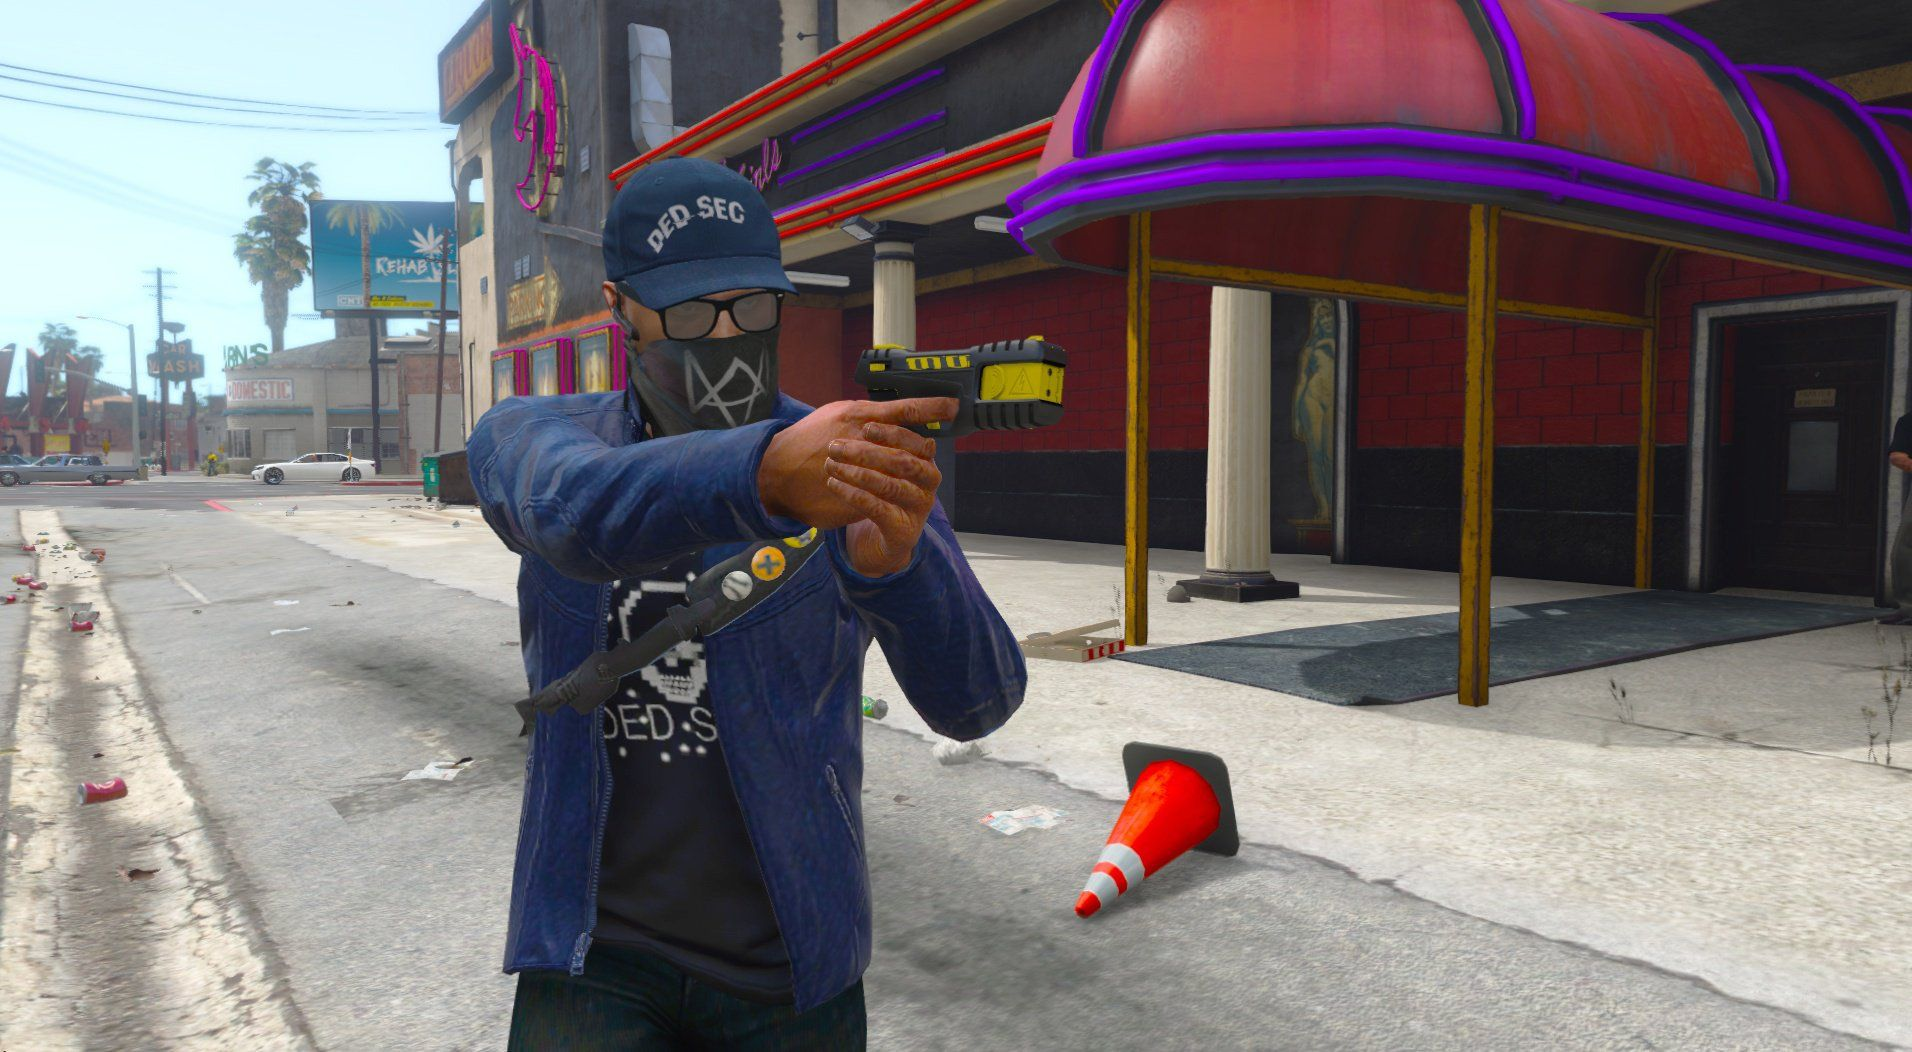 Pics photos grand theft auto iv the law breaking spree continues - Gta 5 Meets Watch_dogs 2 Trailer Video